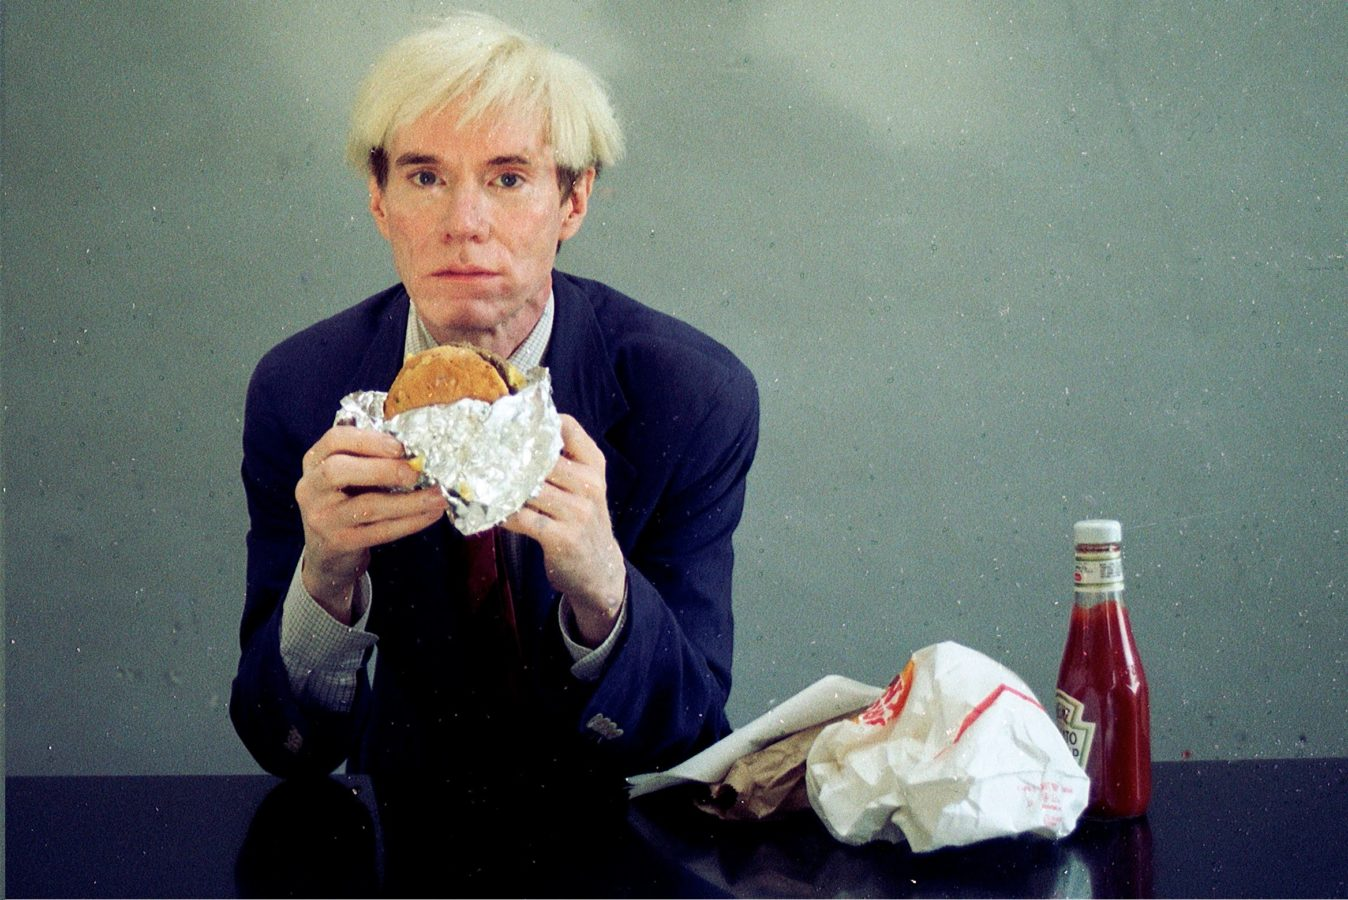 Warhol and his burger in 66 Scenes from America